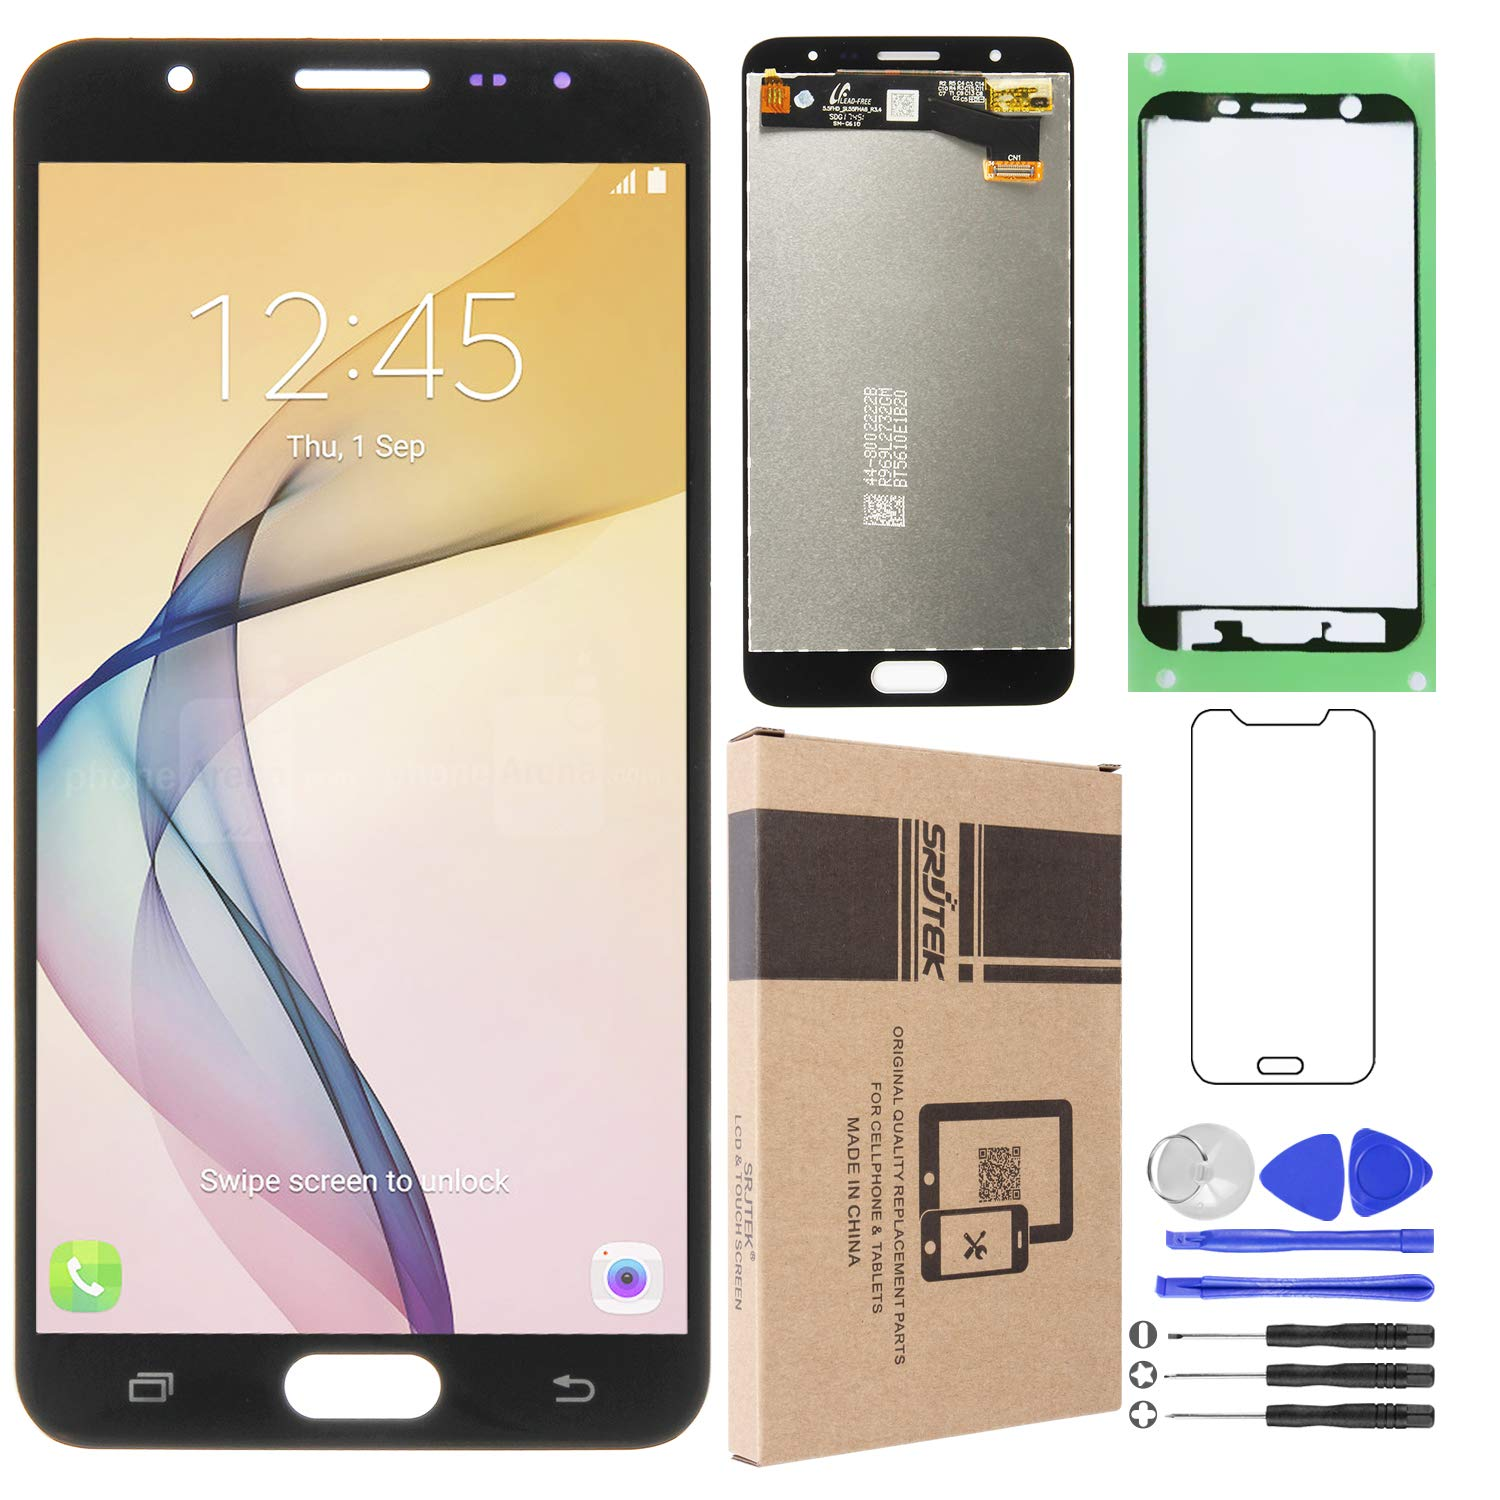 Srjtek Replacement Parts for Samsung Galaxy J7 Prime G610 G6100 G610F SM- G610M/DS SM-610F/DS On7 2016,with Touch Screen Digitizer,Tools Include